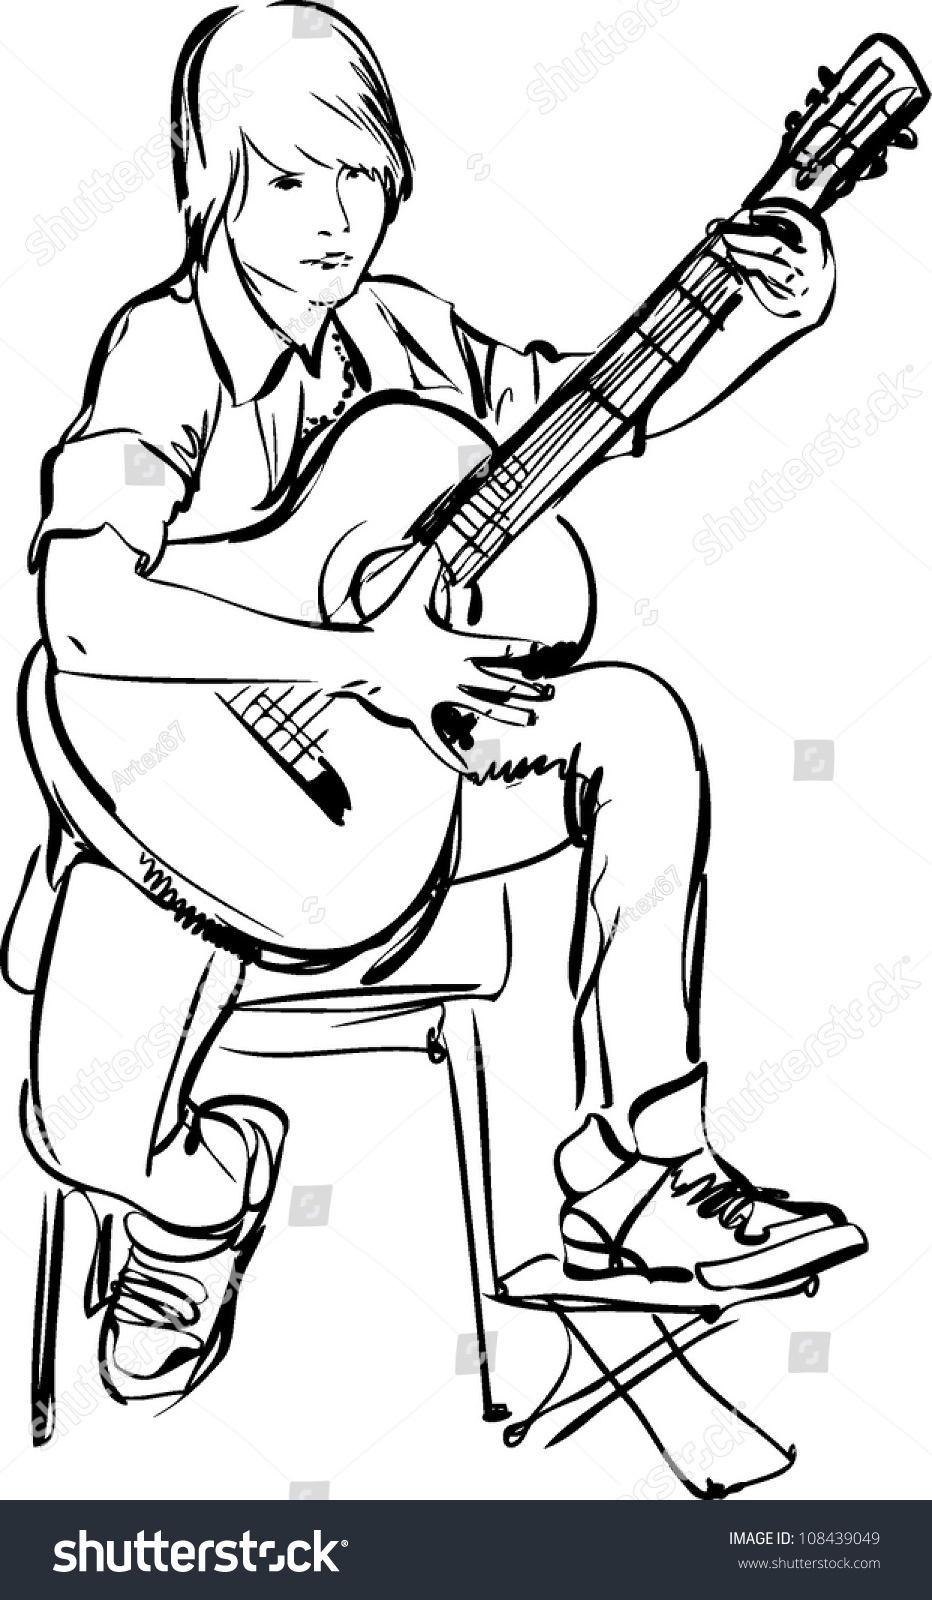 Sketch Boy Playing On Guitar On Stock Vector 108439049 - Shutterstock